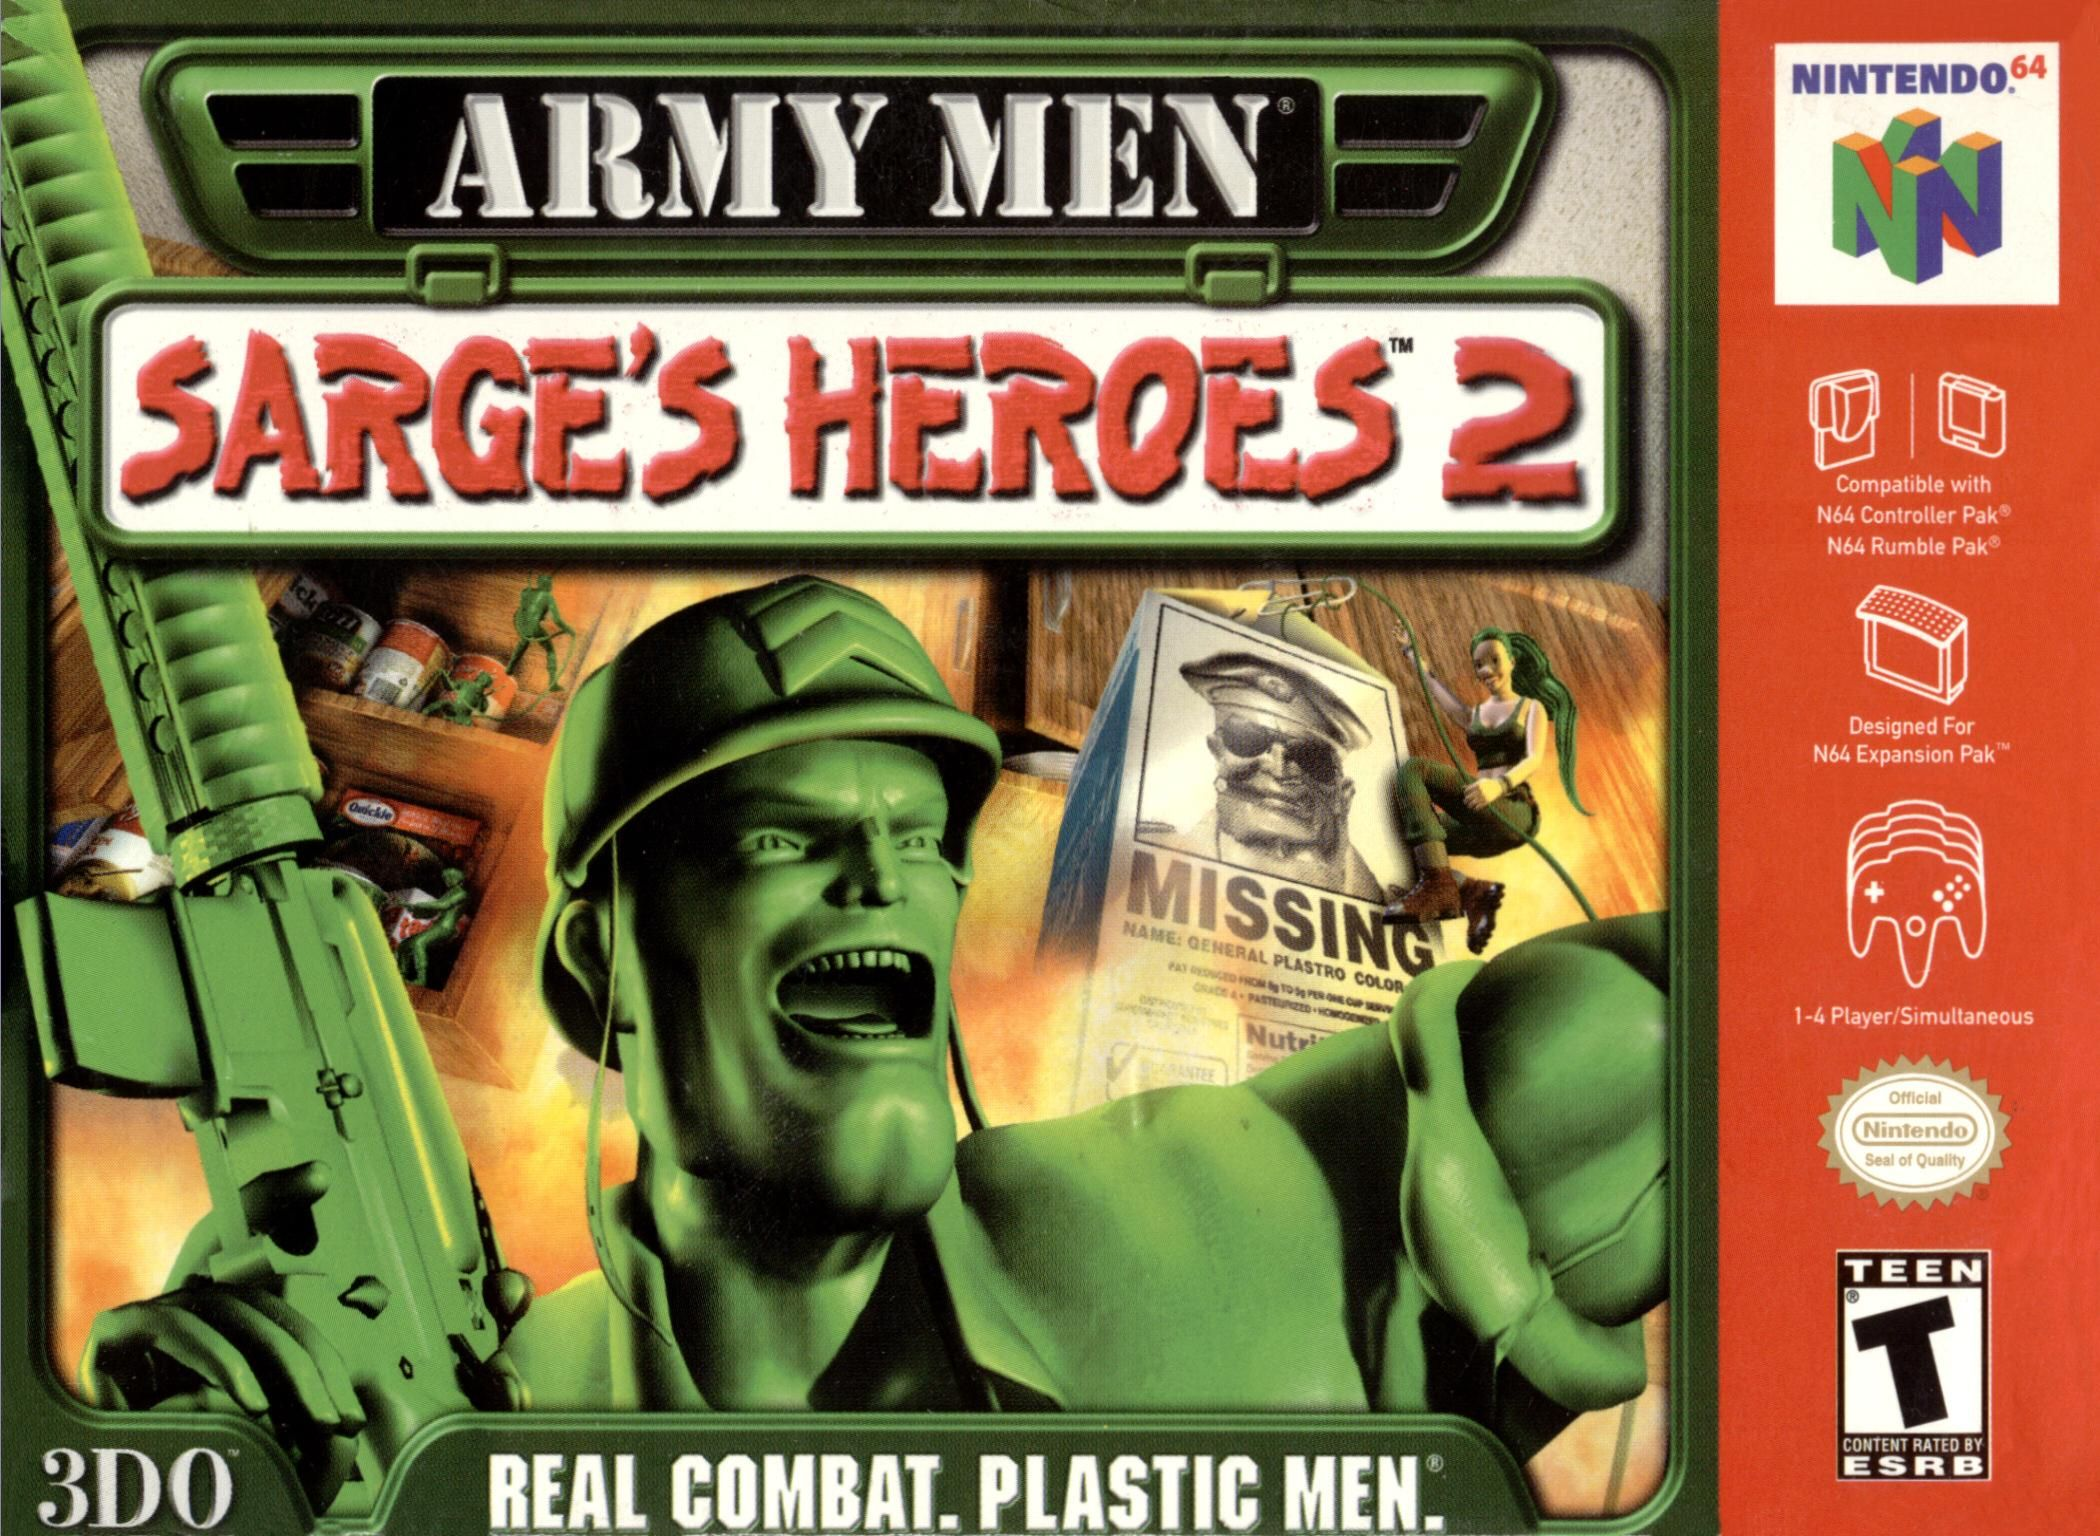 Pin By Aaron Viles On Nintendo Army Men Nintendo 64 Games